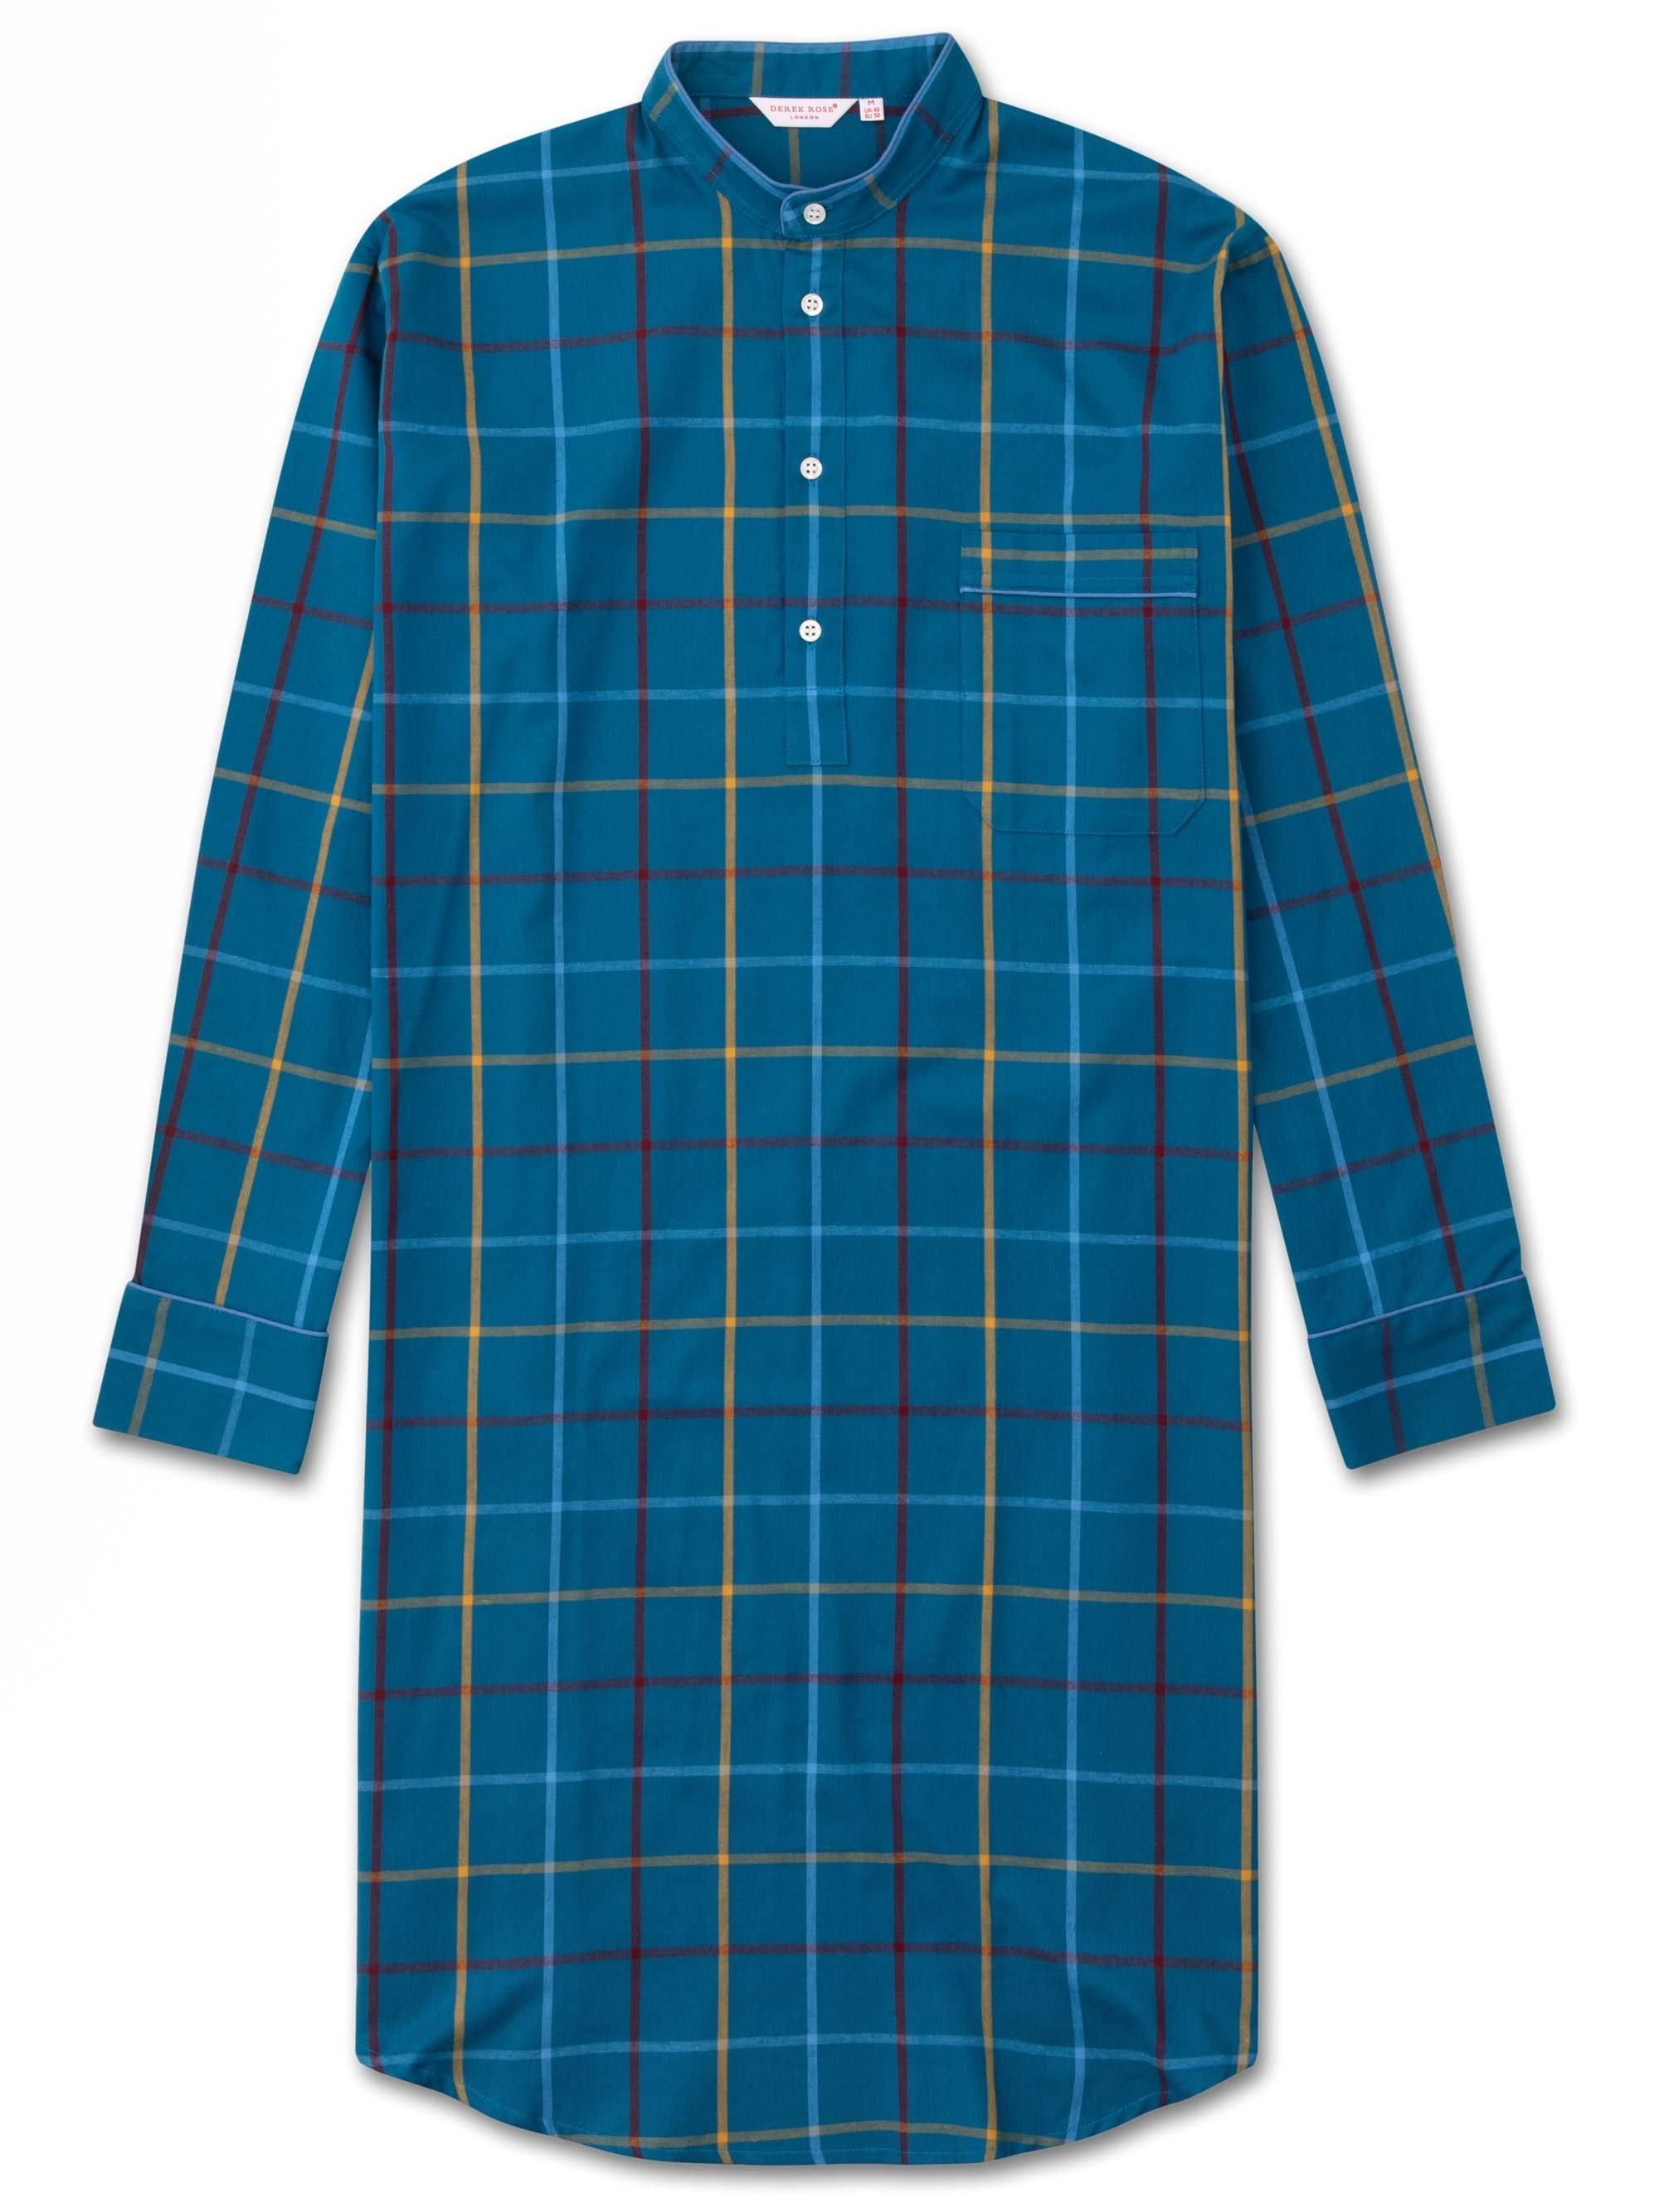 Men's Pullover Nightshirt Ranga 37 Brushed Cotton Check Multi